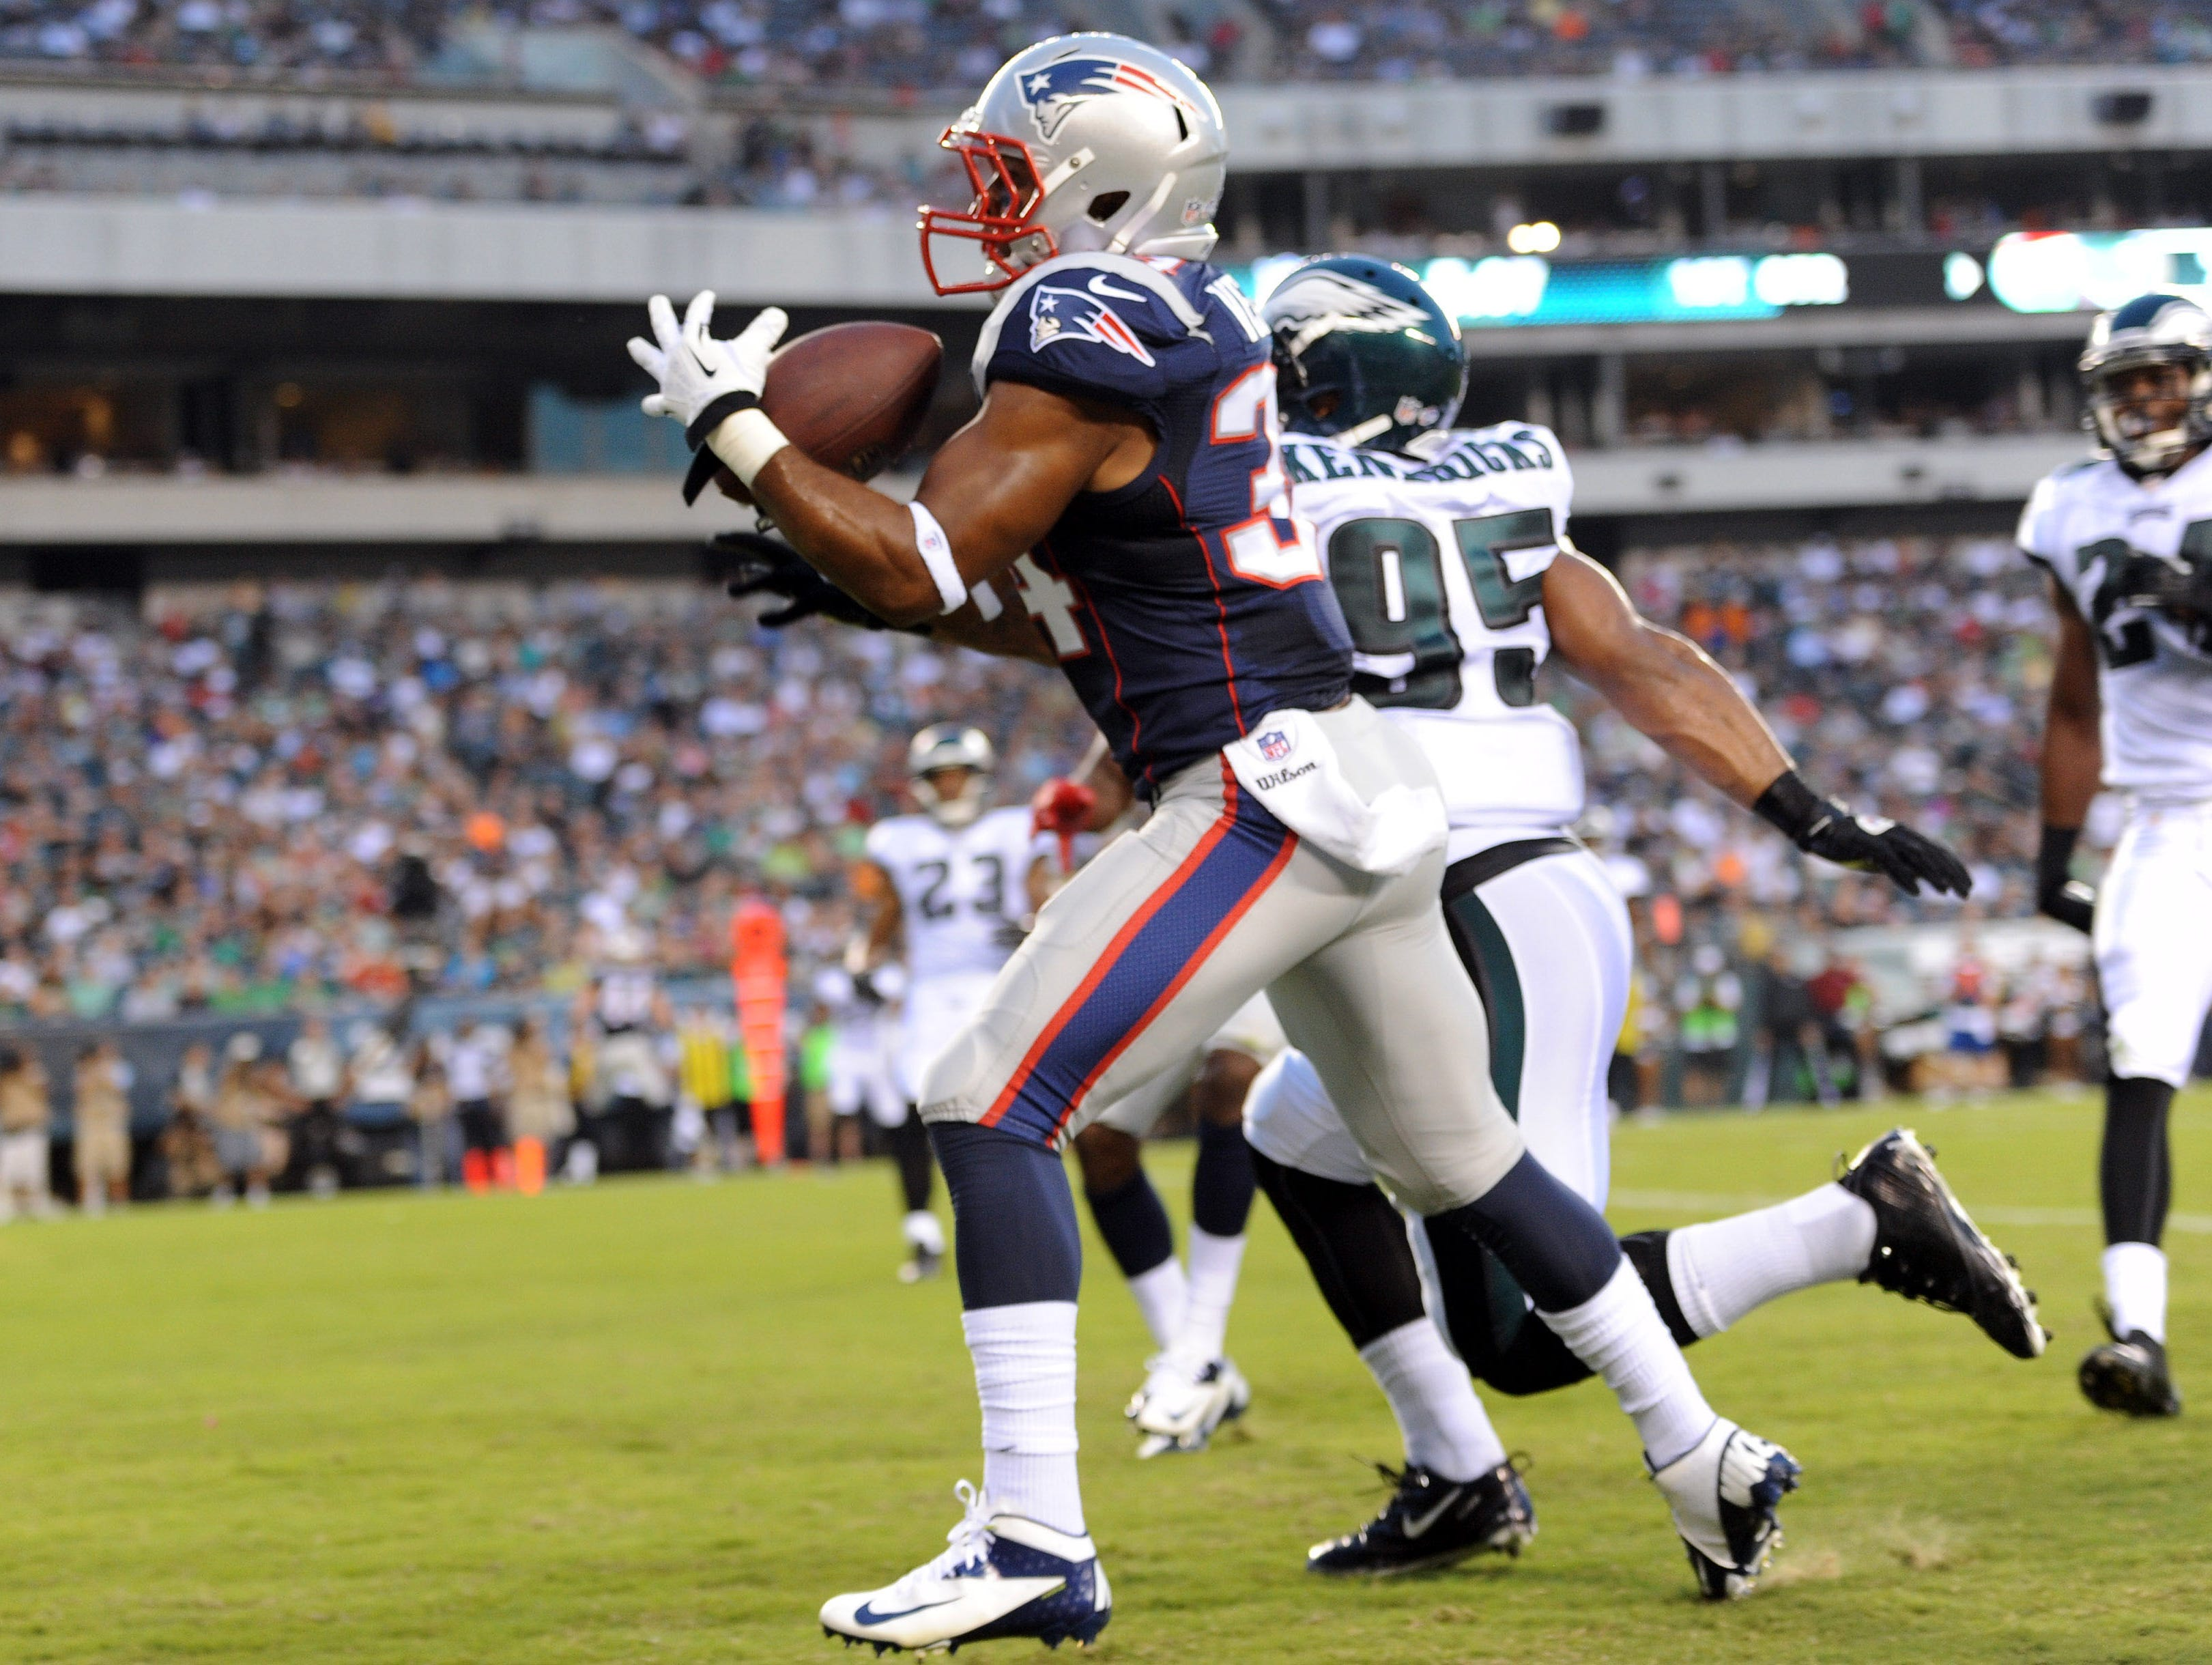 New England Patriots running back Shane Vereen (34) makes a touchdown catch against the Philadelphia Eagles during the first half of a preseason game at Lincoln Financial Field.